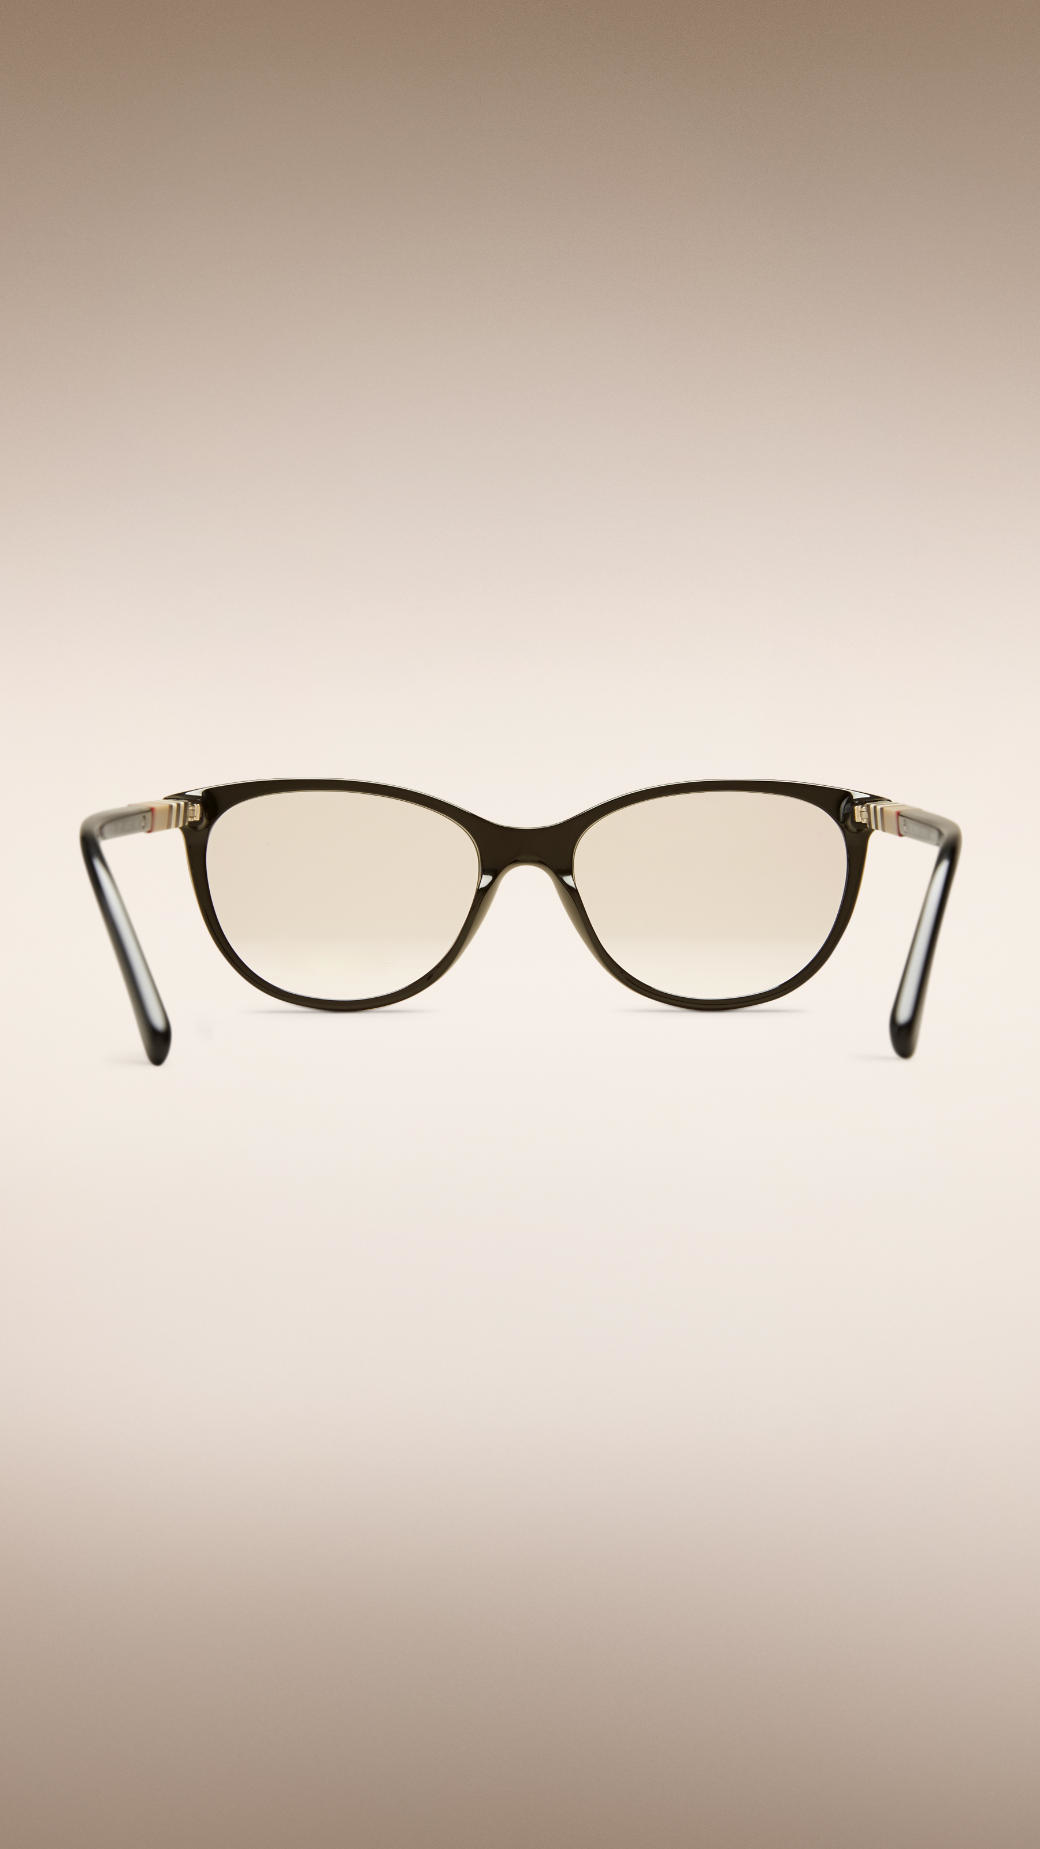 Lyst Burberry Check Detail Cat Eye Optical Frames In Black 7ae38af4cd6b